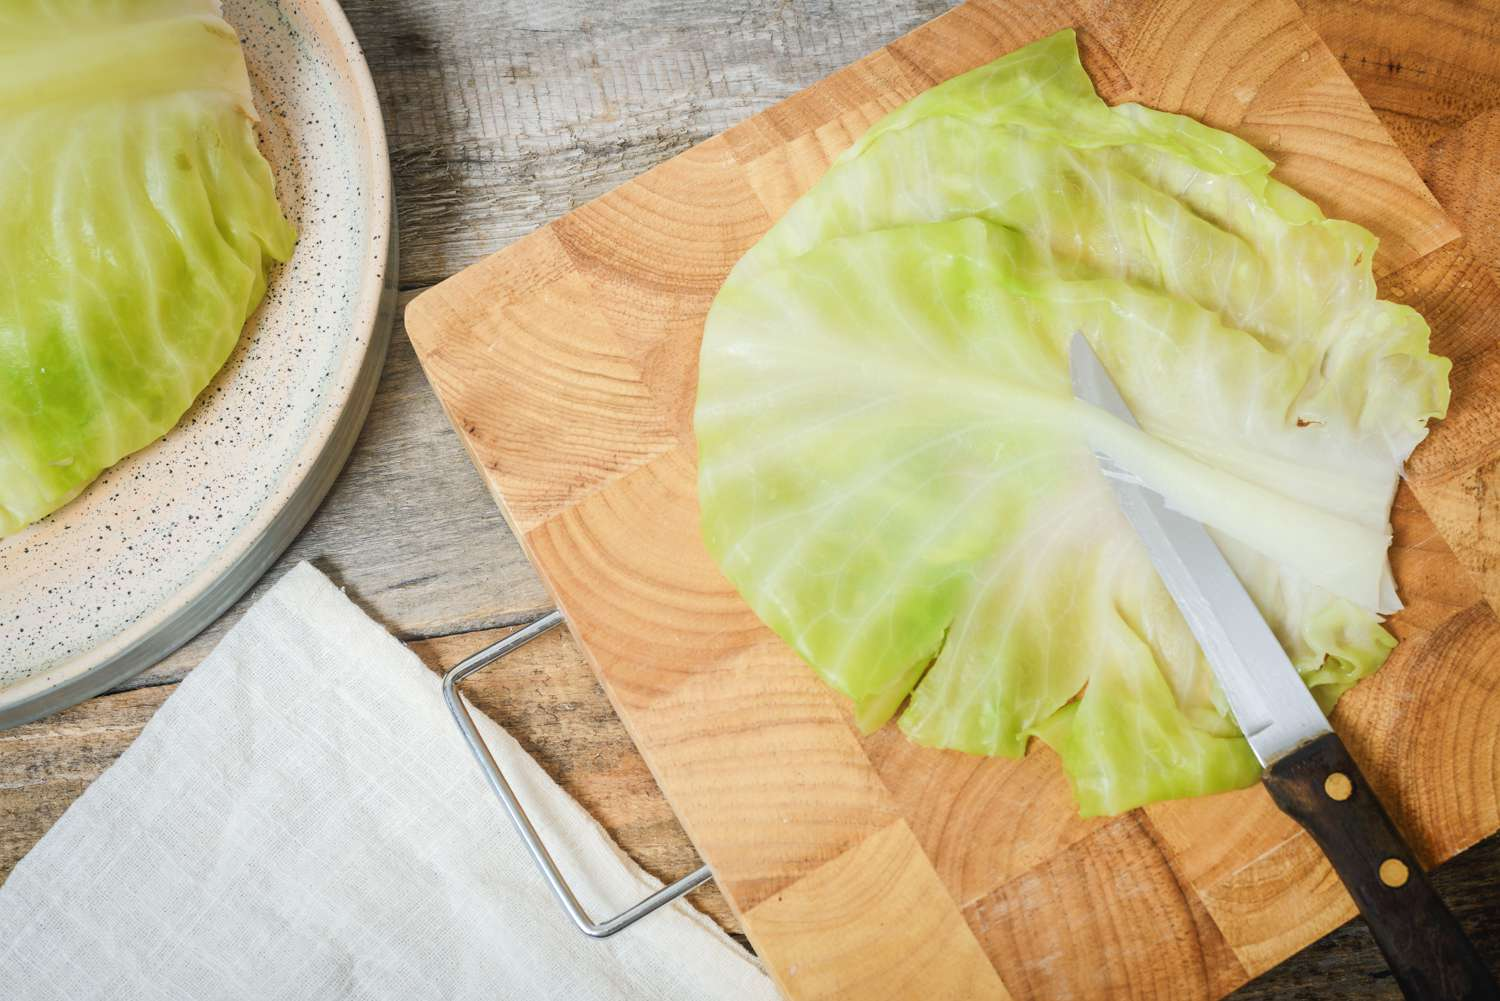 Stems removed from cabbage leaves on a cutting board